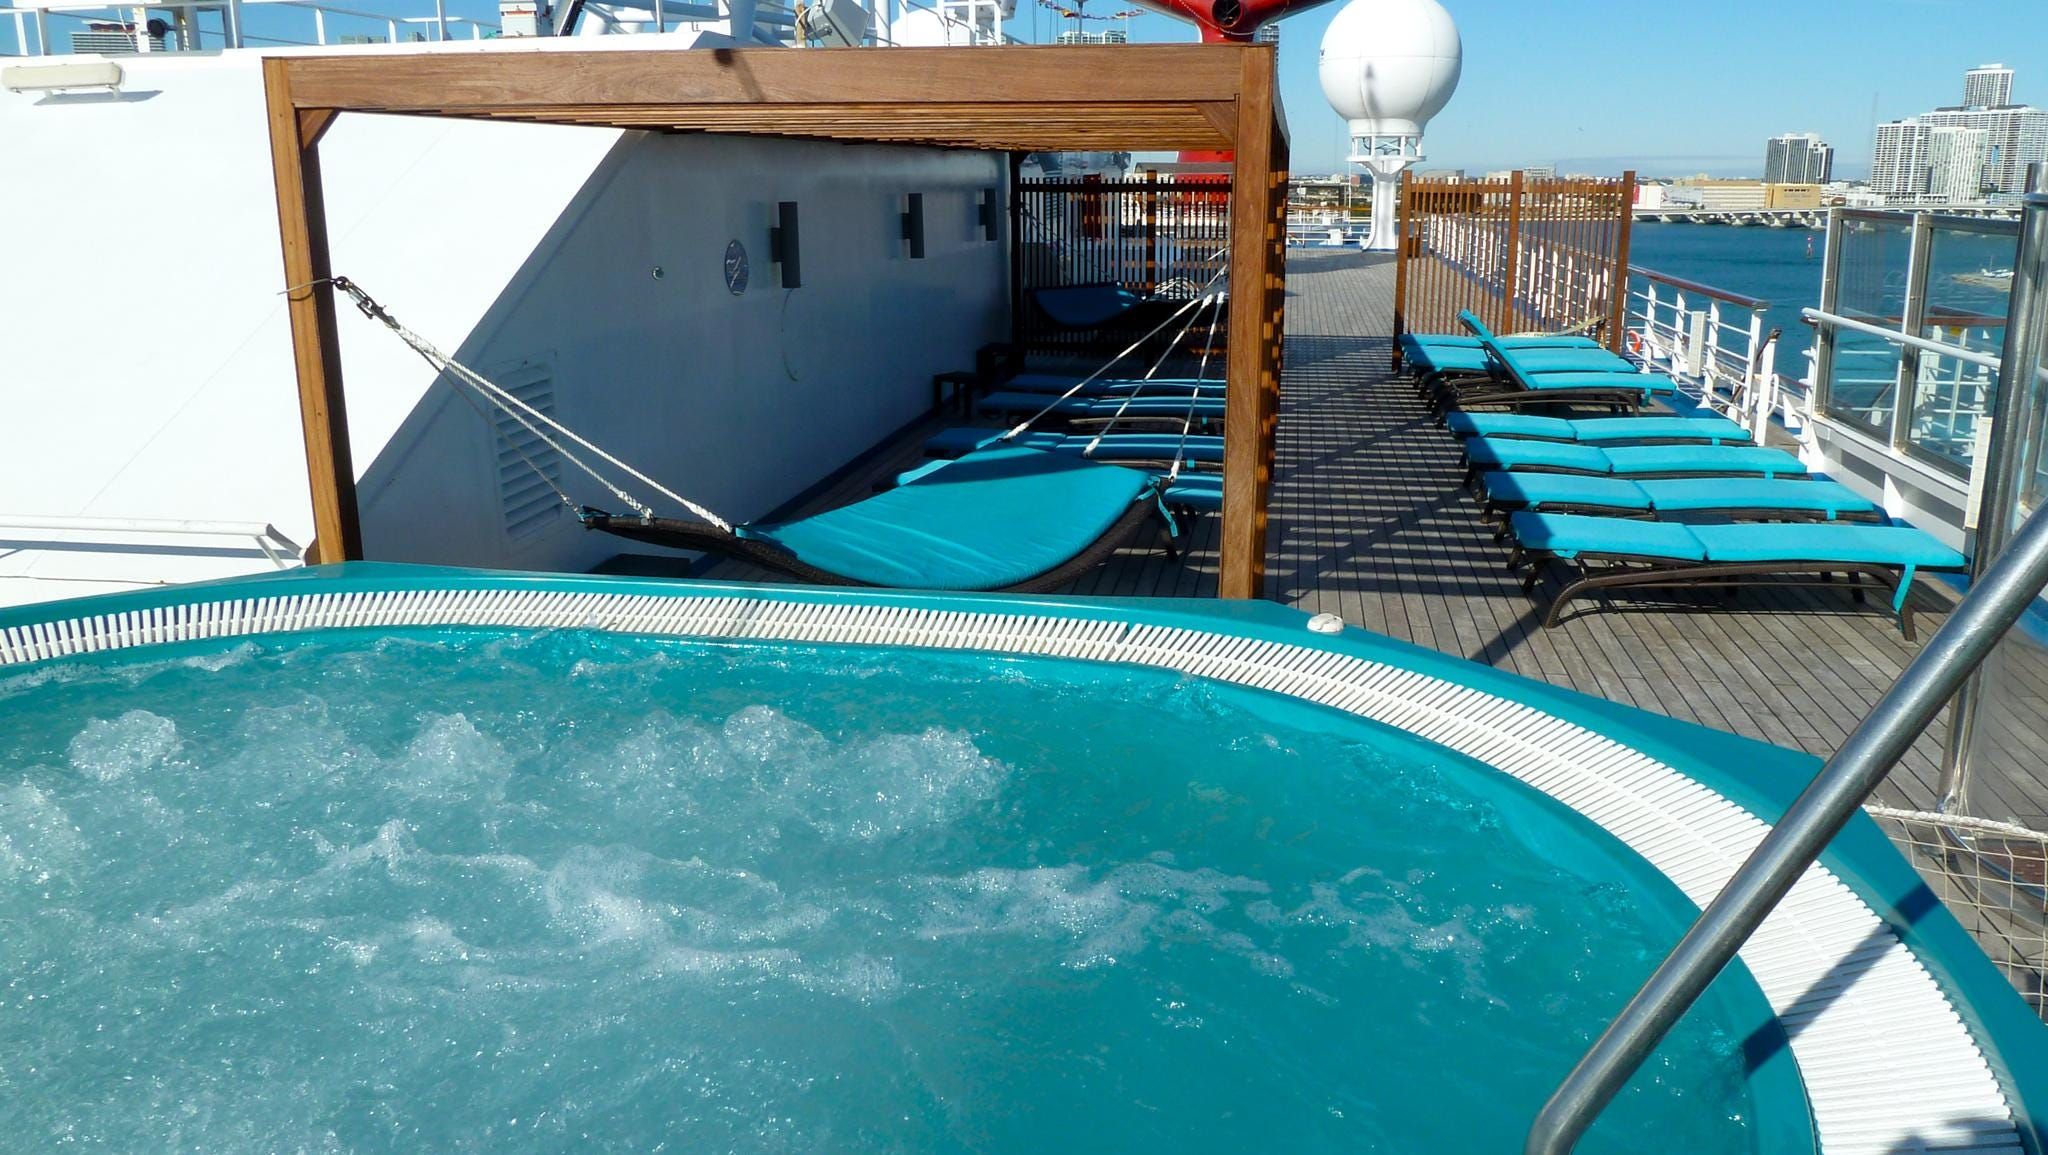 Deck 14 is also home to the top level of the adults-only Serenity area, which features cushioned loungers and hammocks as well as a pair of large Jacuzzis.